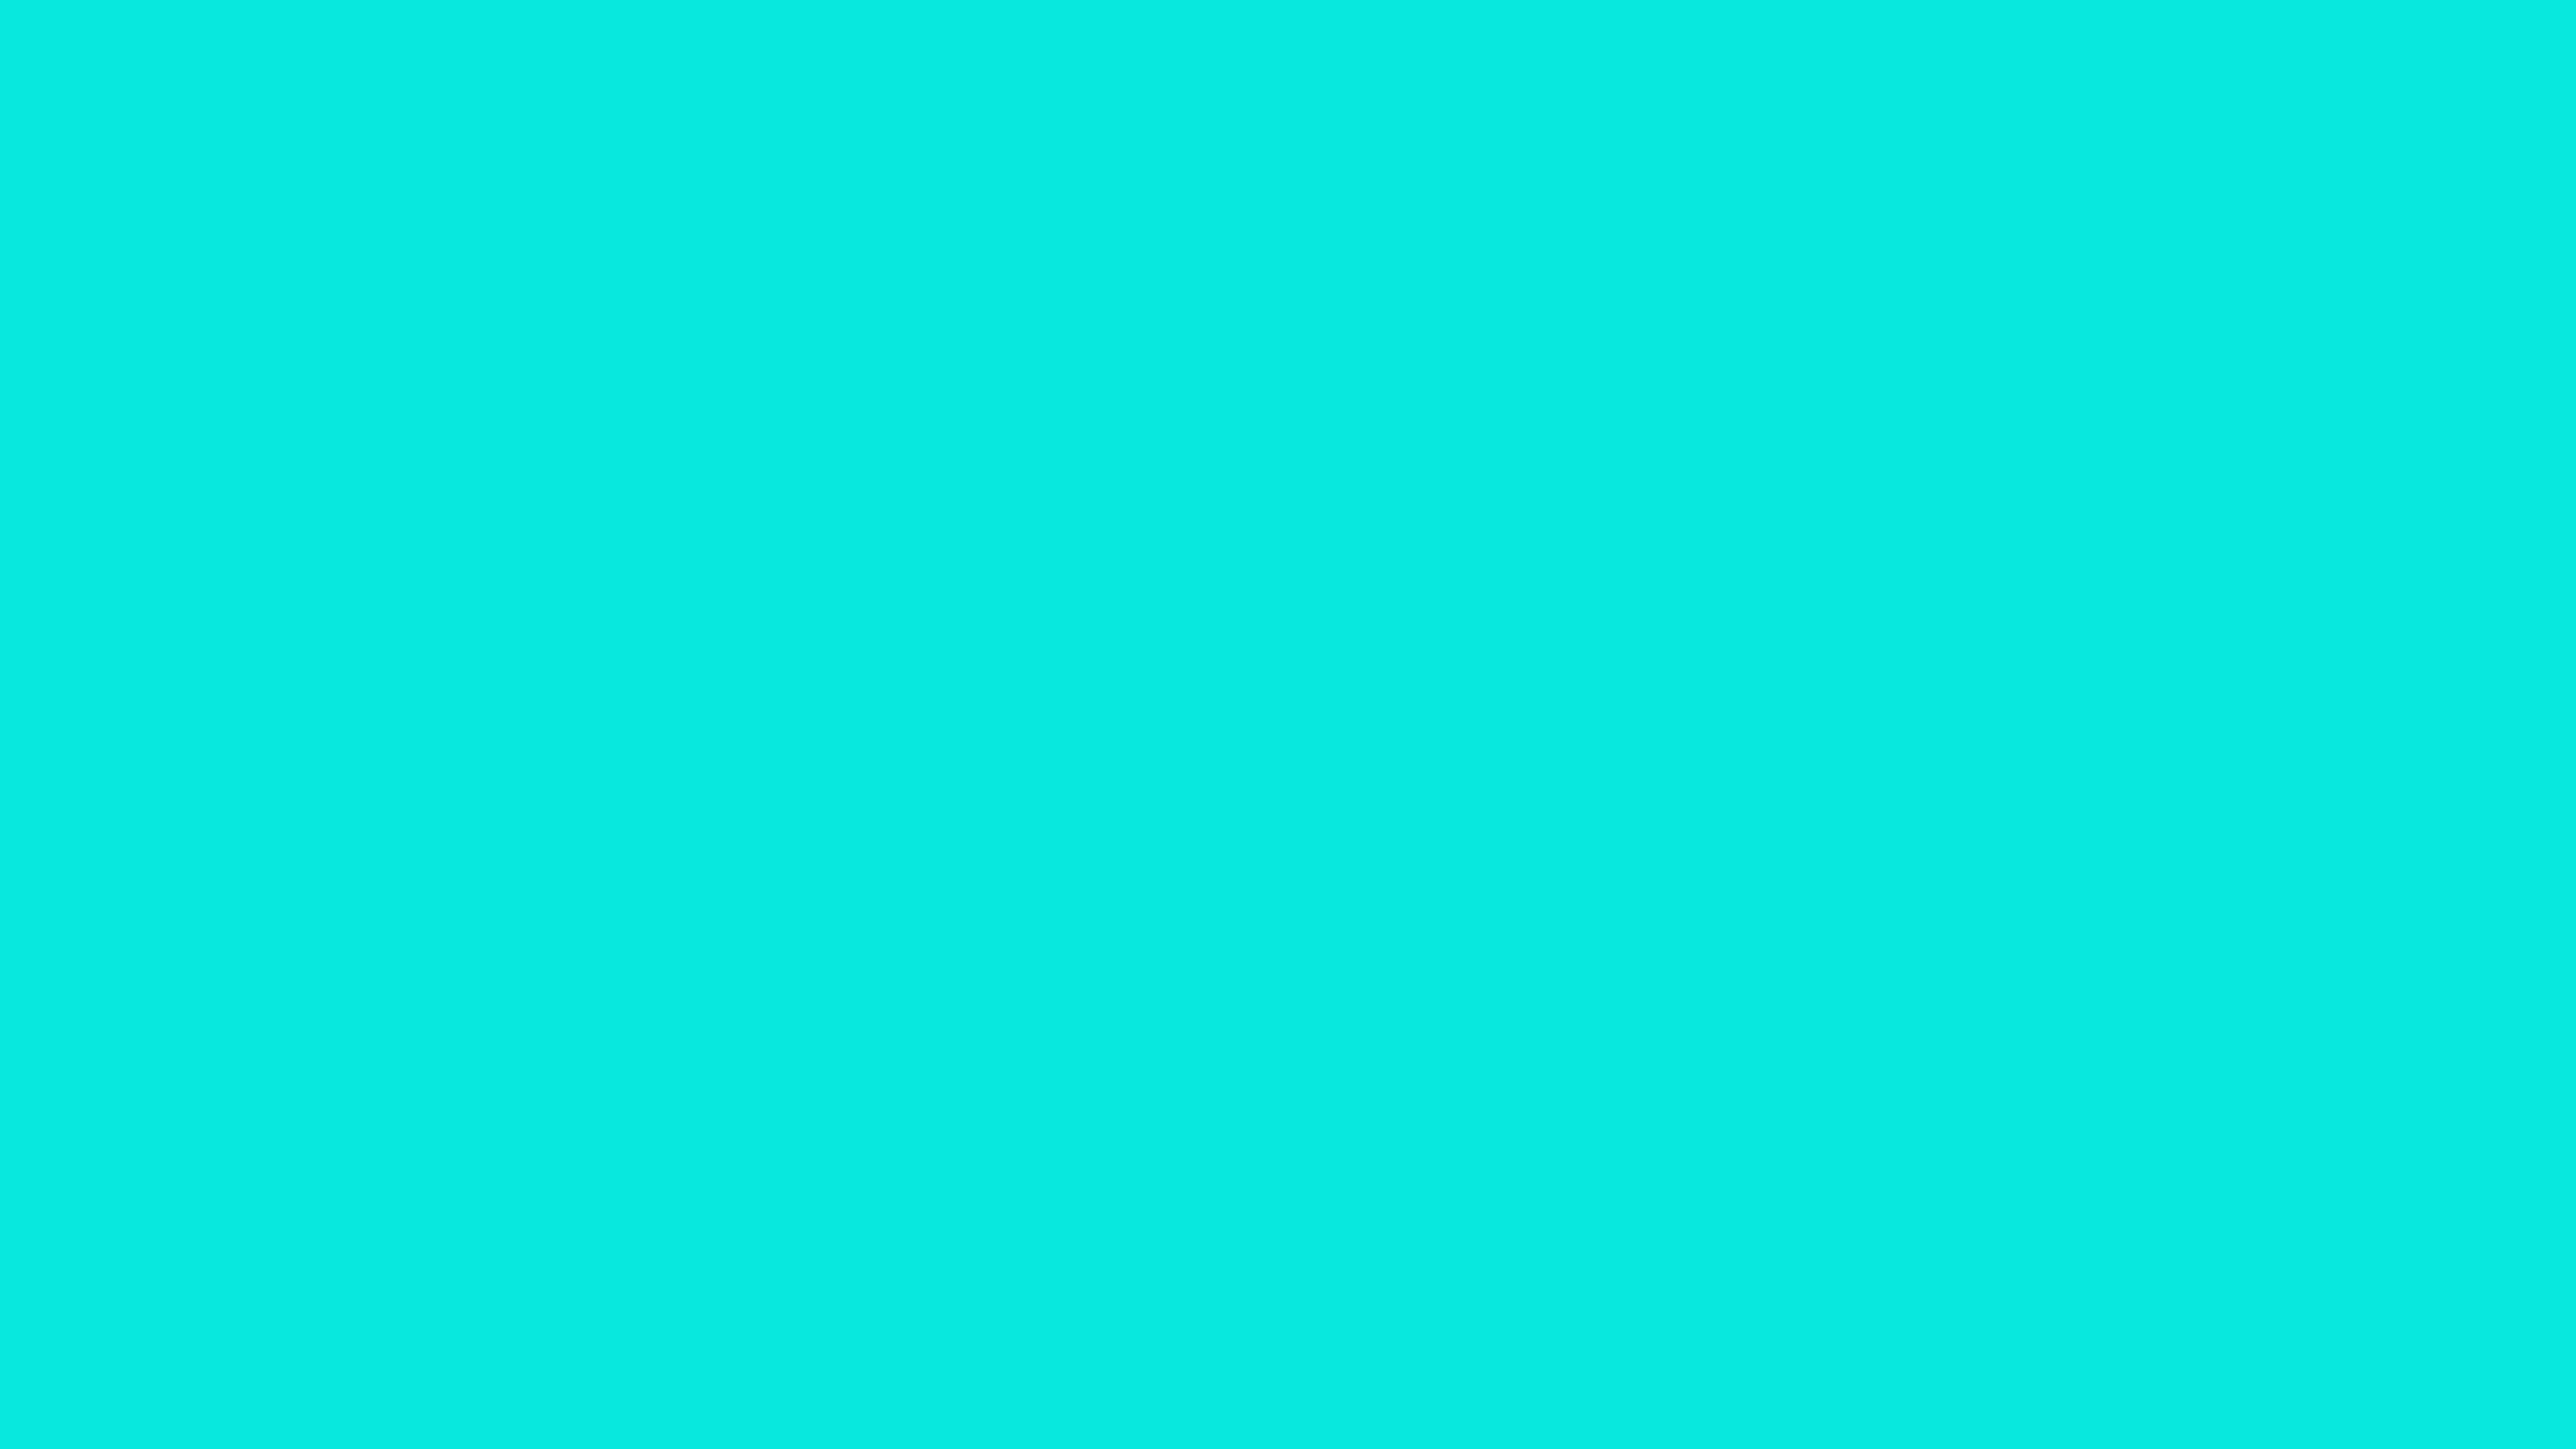 4096x2304 Bright Turquoise Solid Color Background